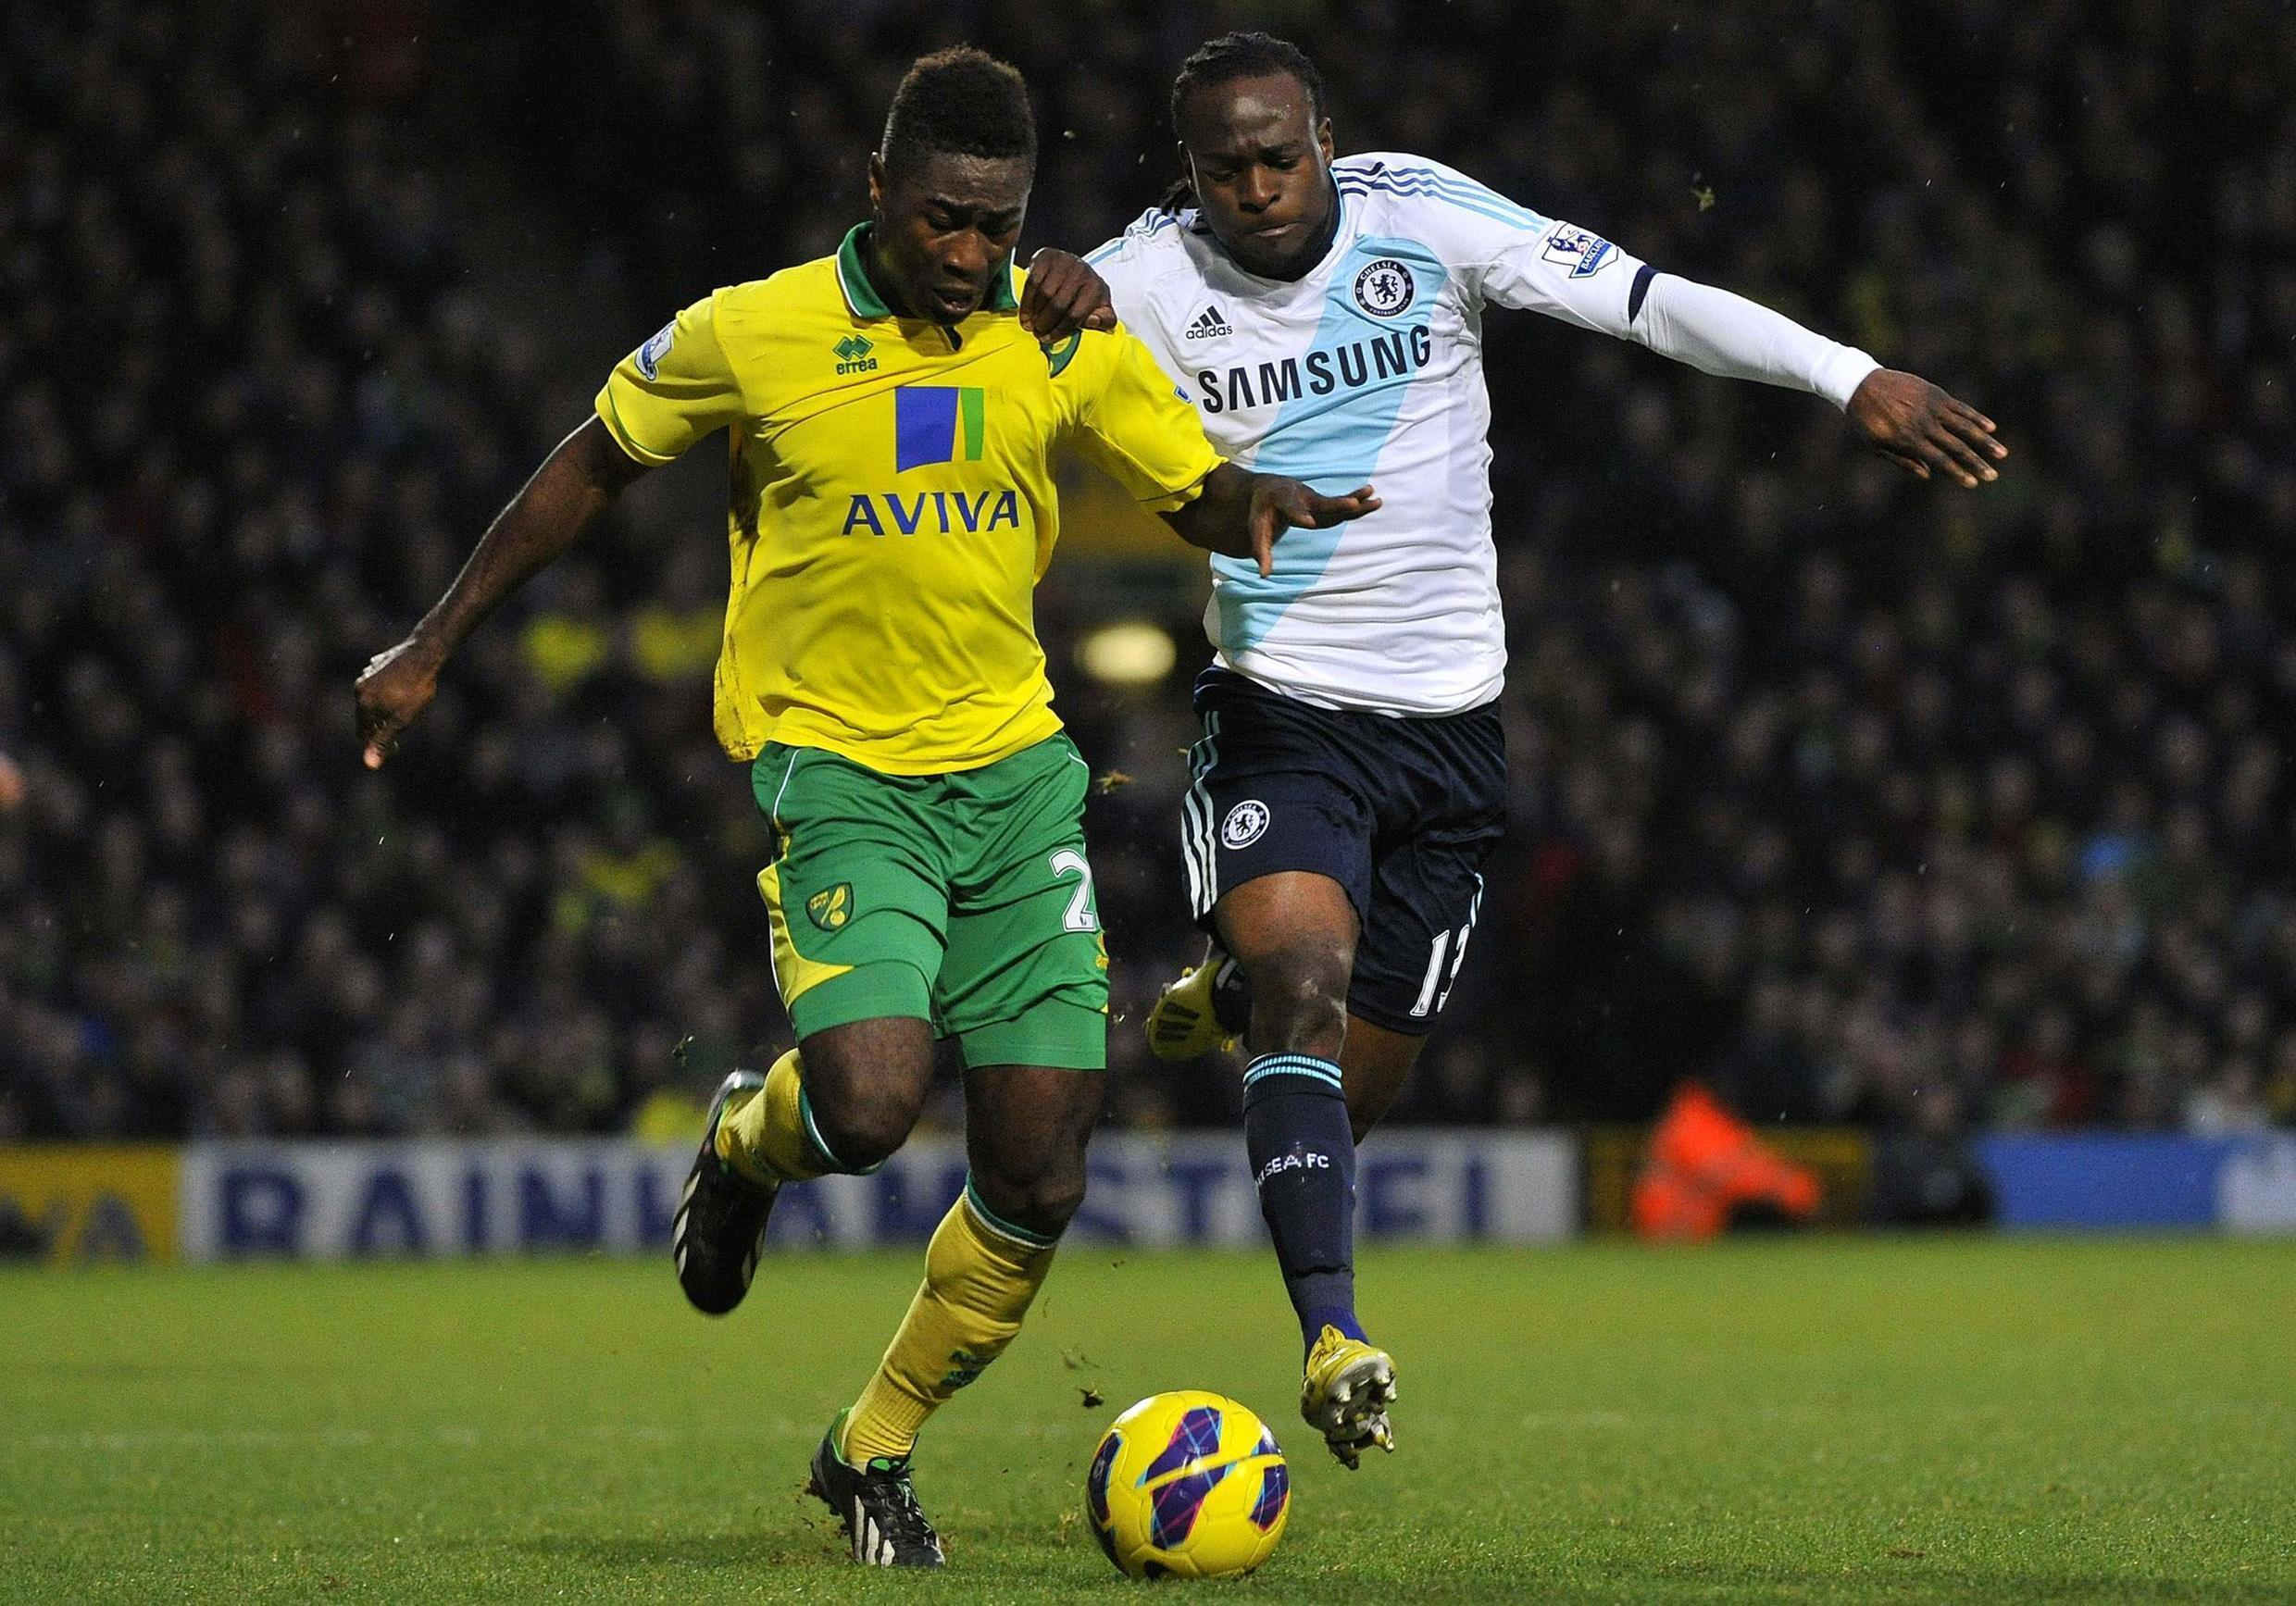 Norwich City's Alex Tettey (L) challenges for the ball with Chelsea's Victor Moses, 26 December, 2012